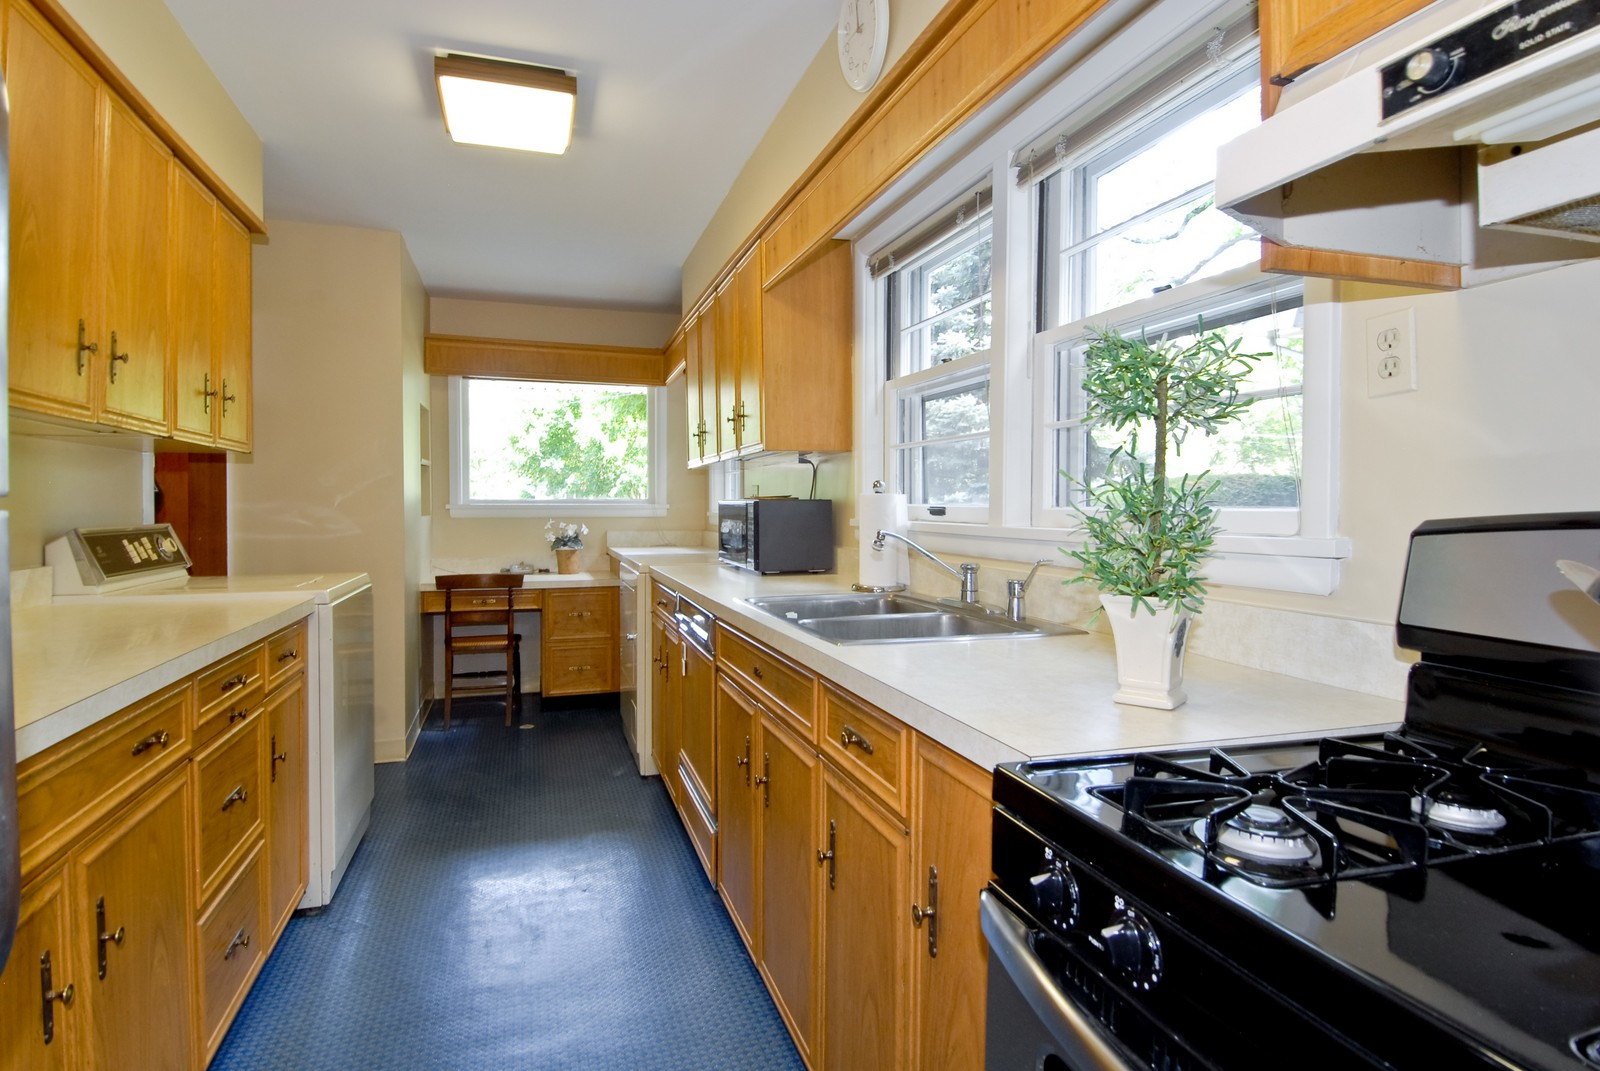 Real Estate Photography - 525 S McKinley St, St Charles, IL, 60174 - Kitchen